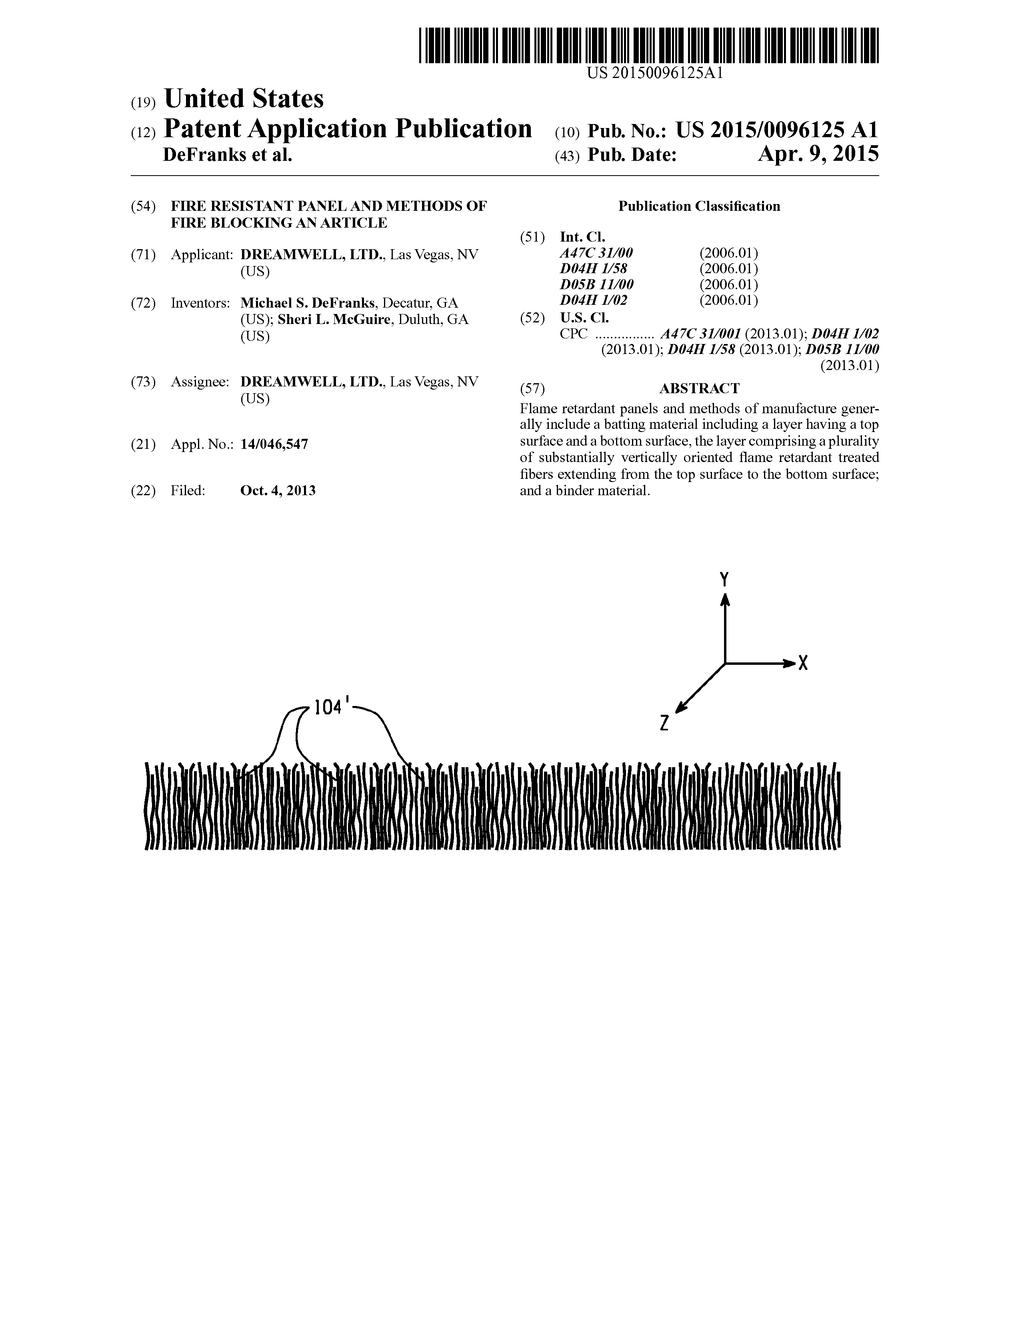 Fire Resistant Panel And Methods Of Fire Blocking An Article